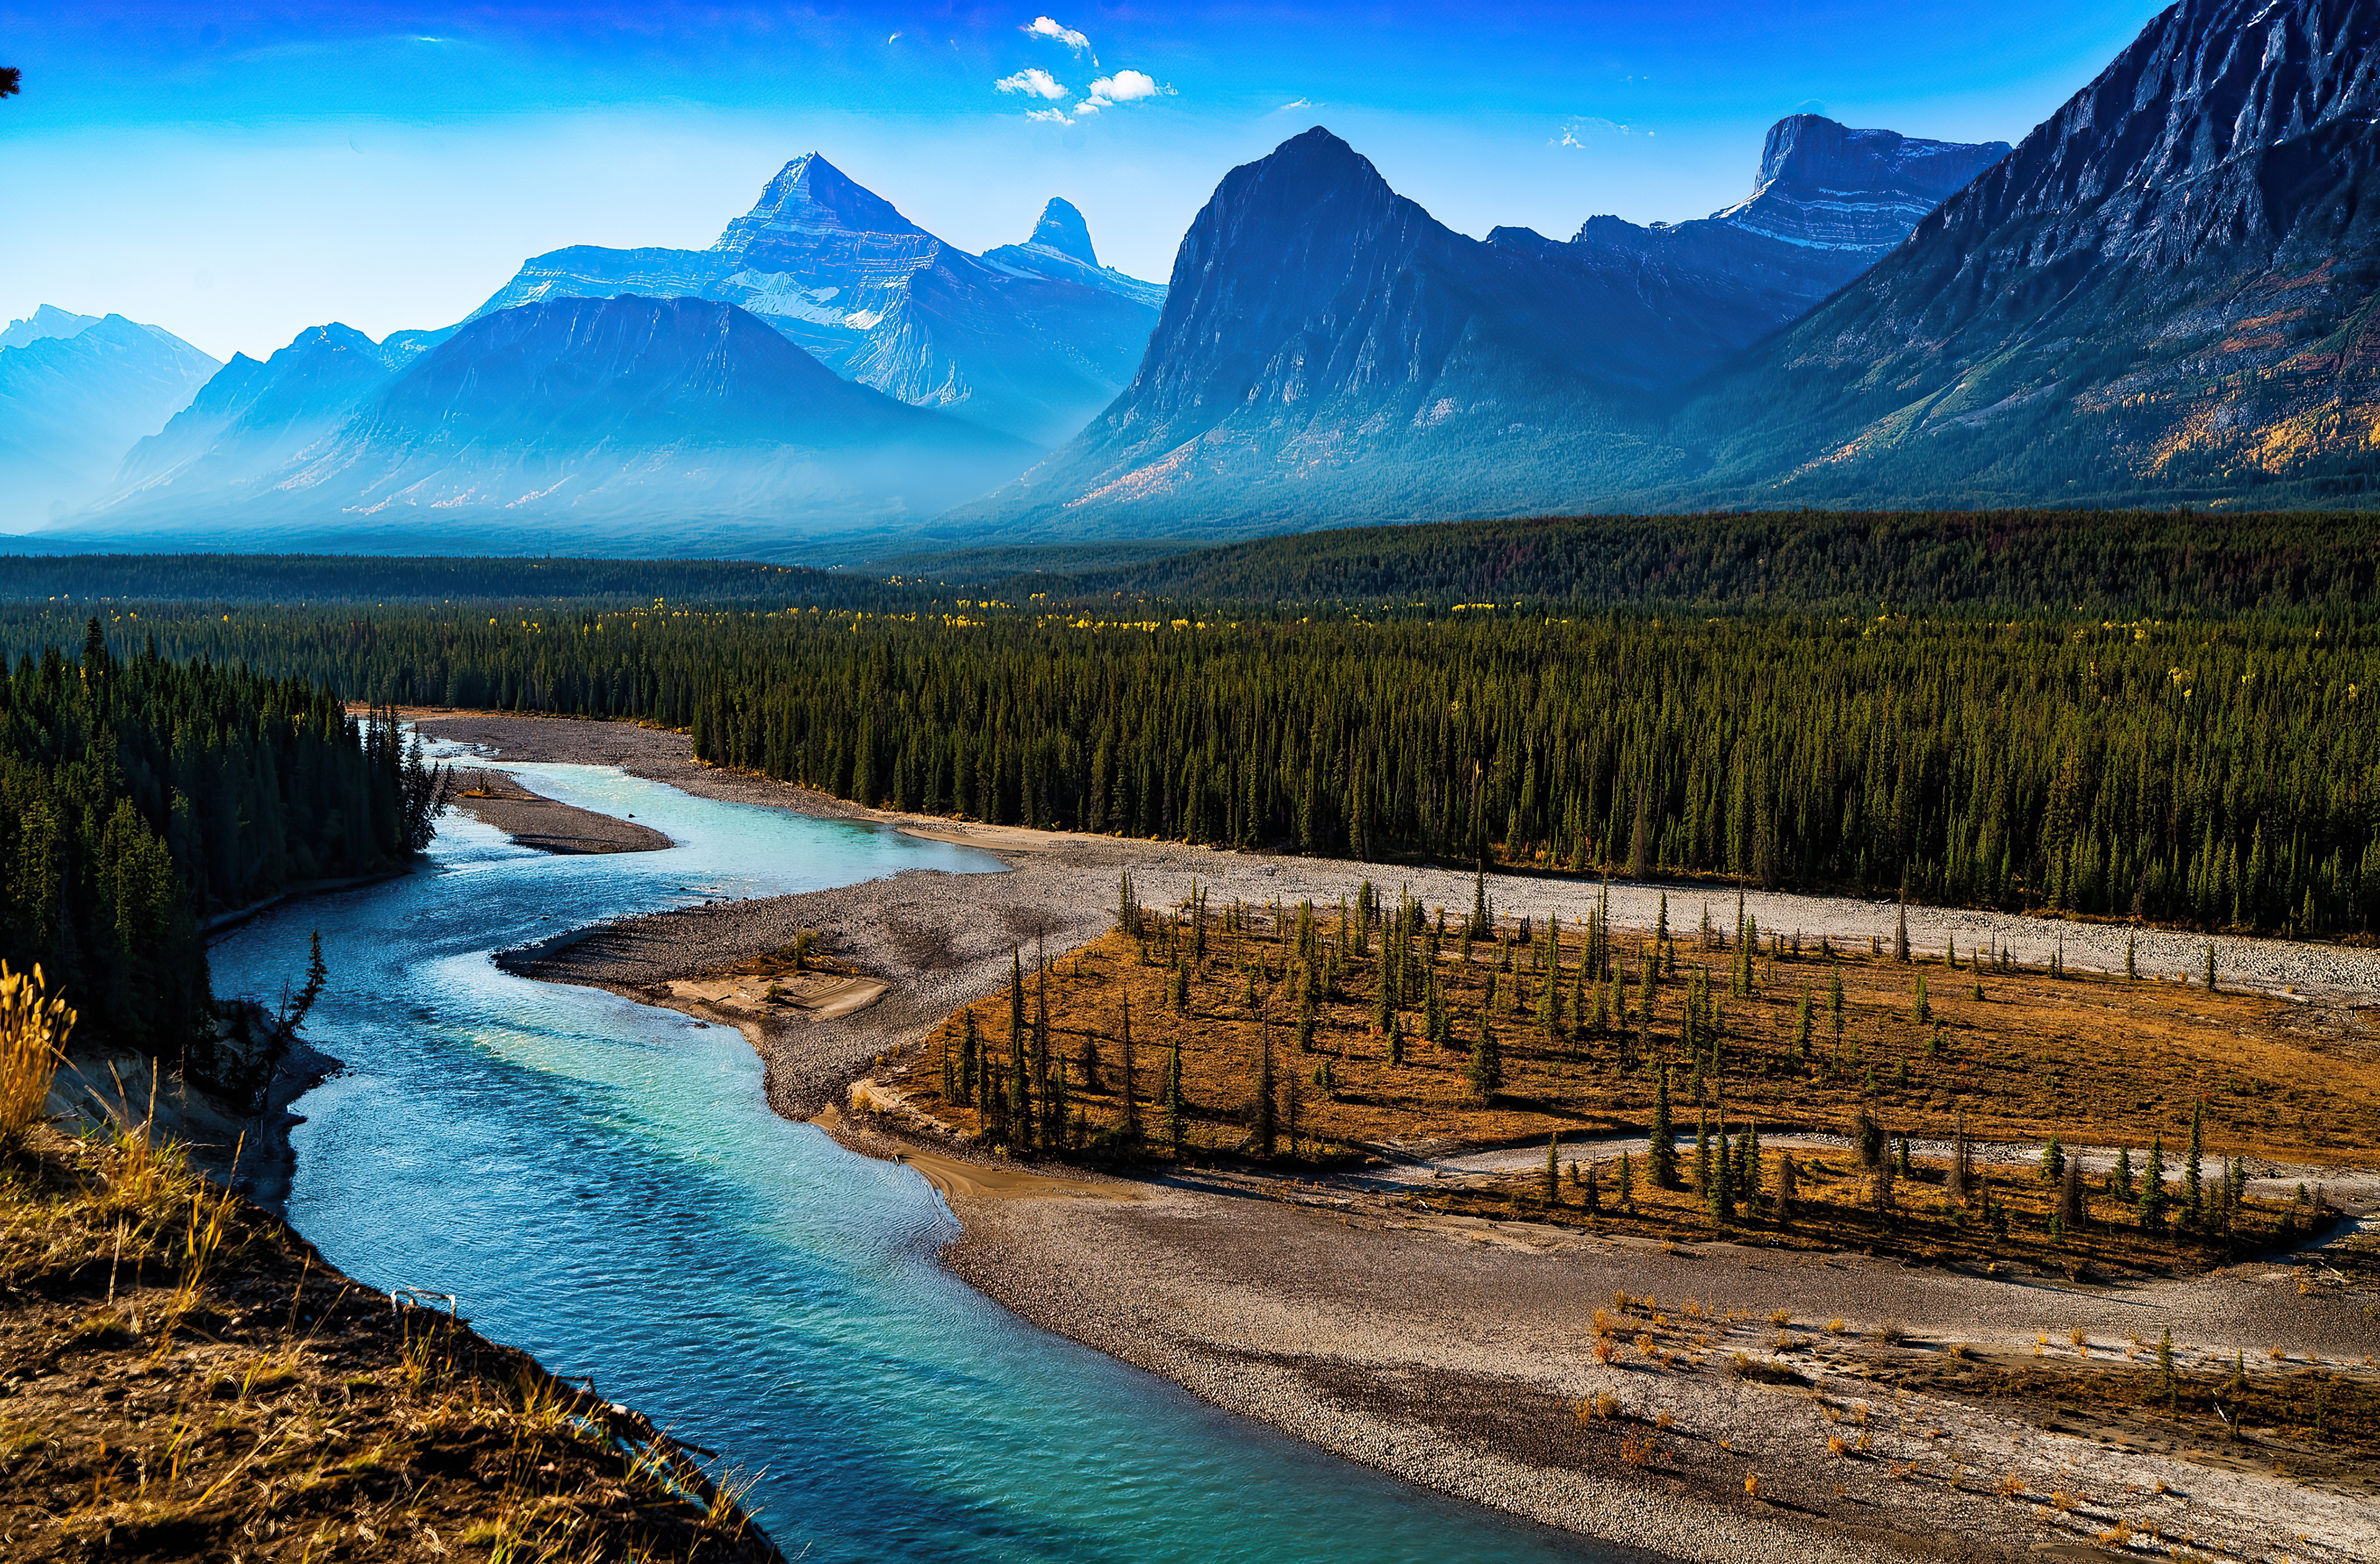 Wallpaper Landscape of mountains in forest with river